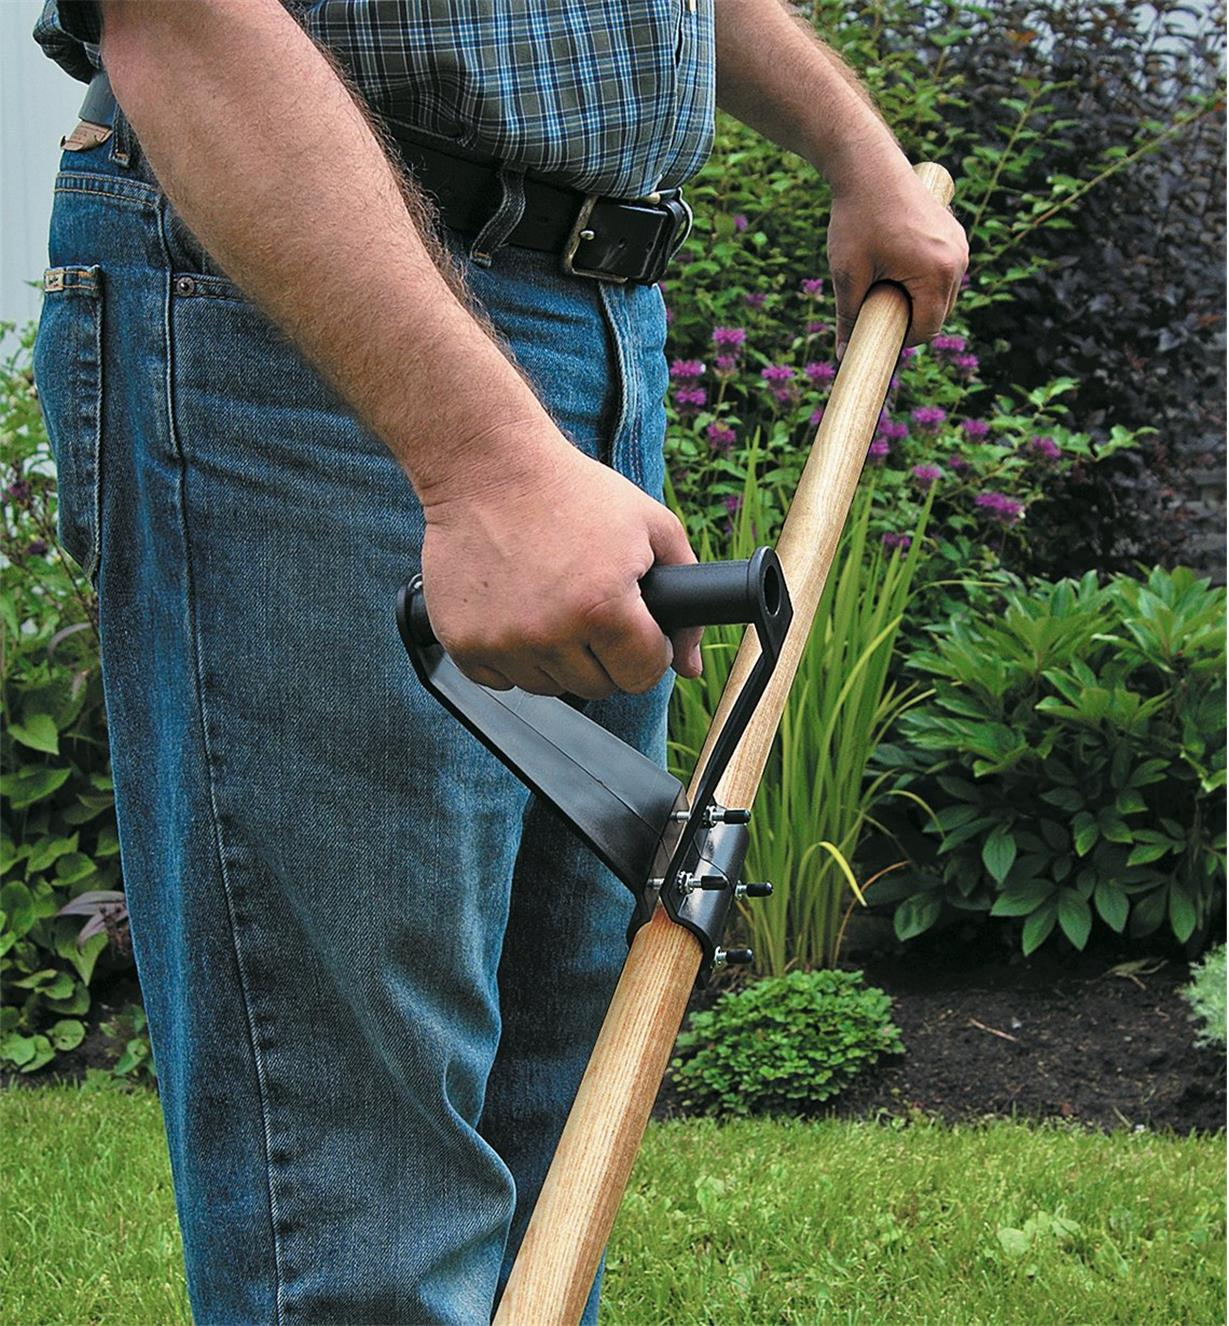 A man using a BackSaver Grip attached to a long-handled tool